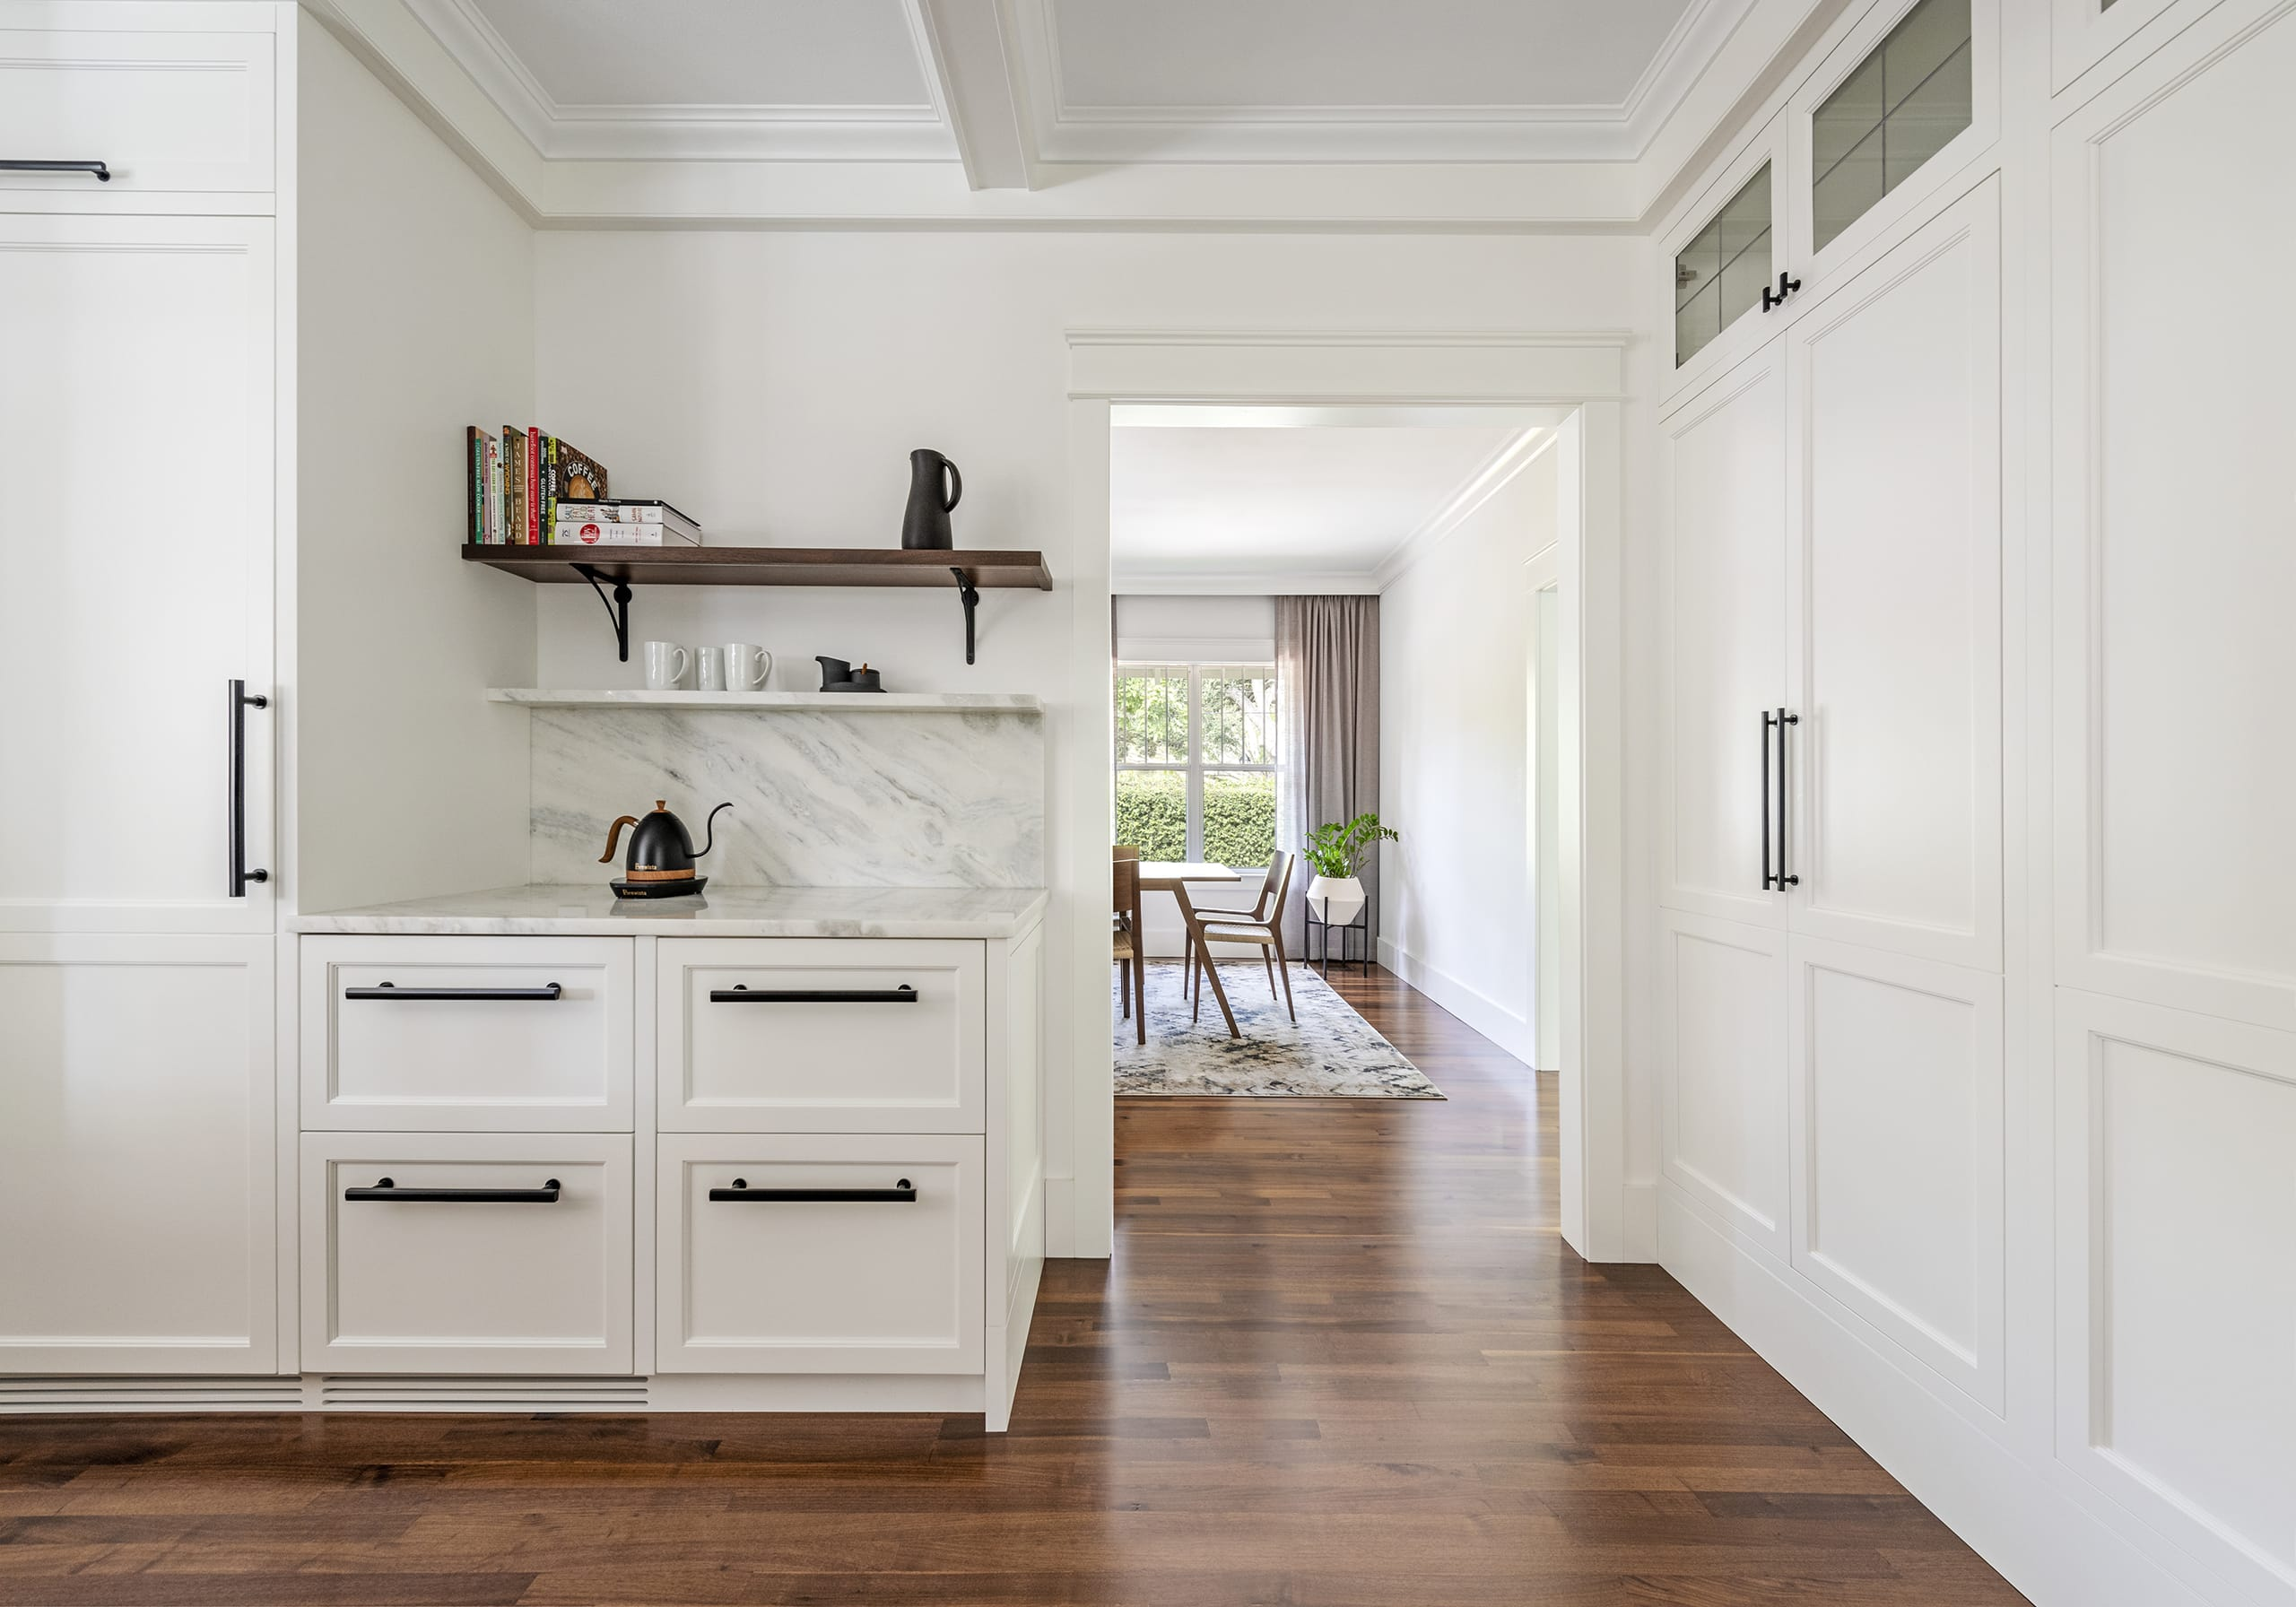 White Cabinets Marble Counter Top Wood Floors Dining Room